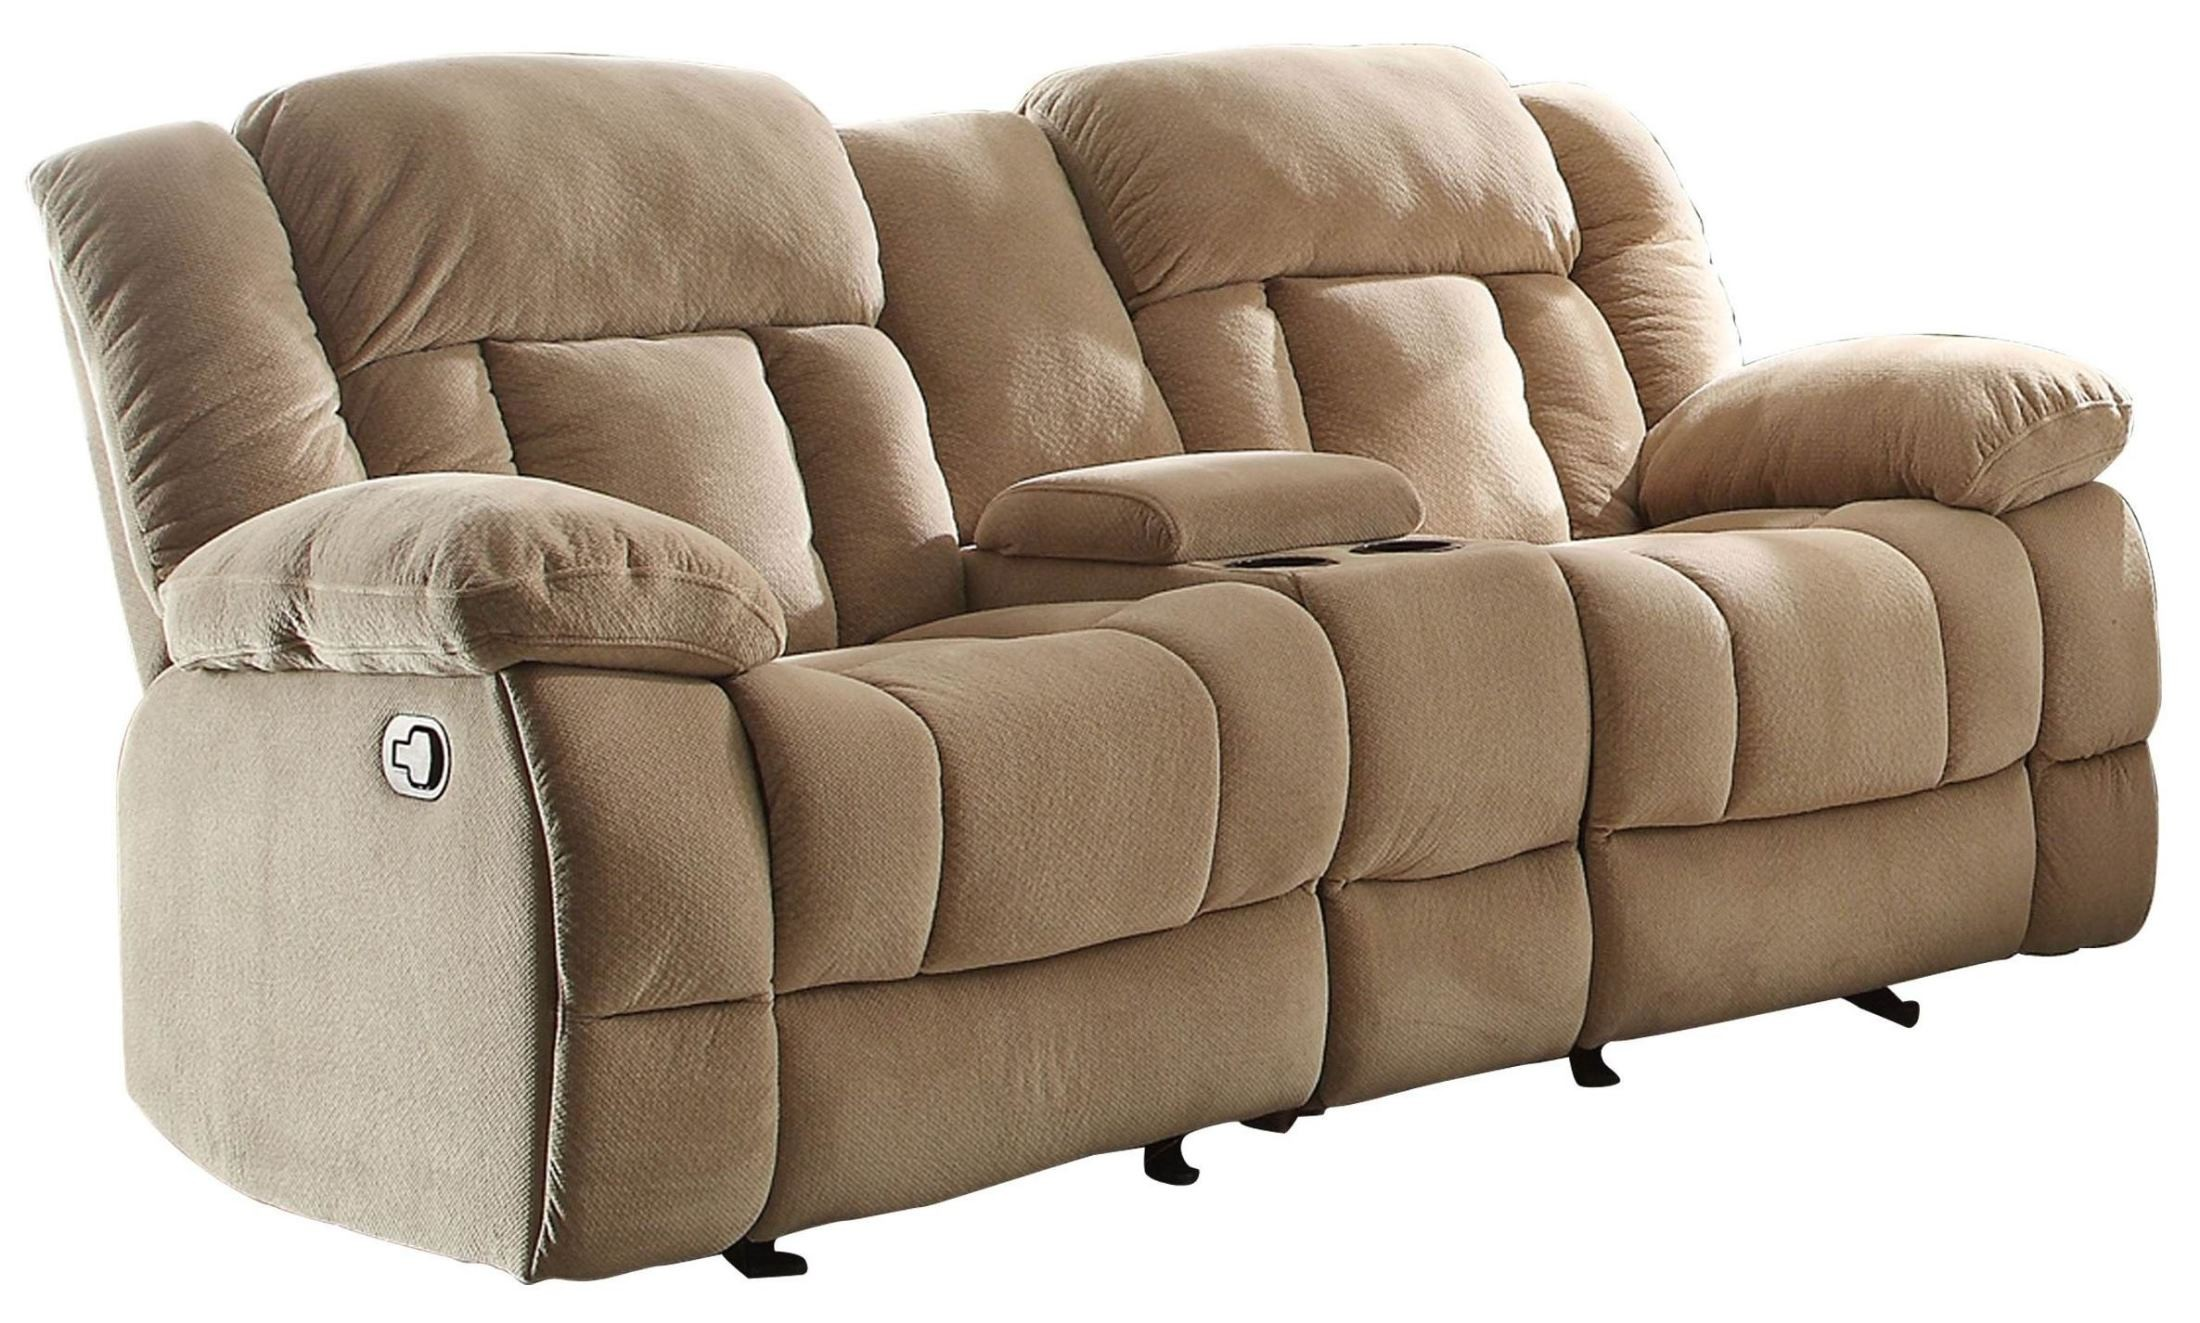 Laurelton Taupe Double Glider Reclining Loveseat With Console From Homelegance 9636nf 2